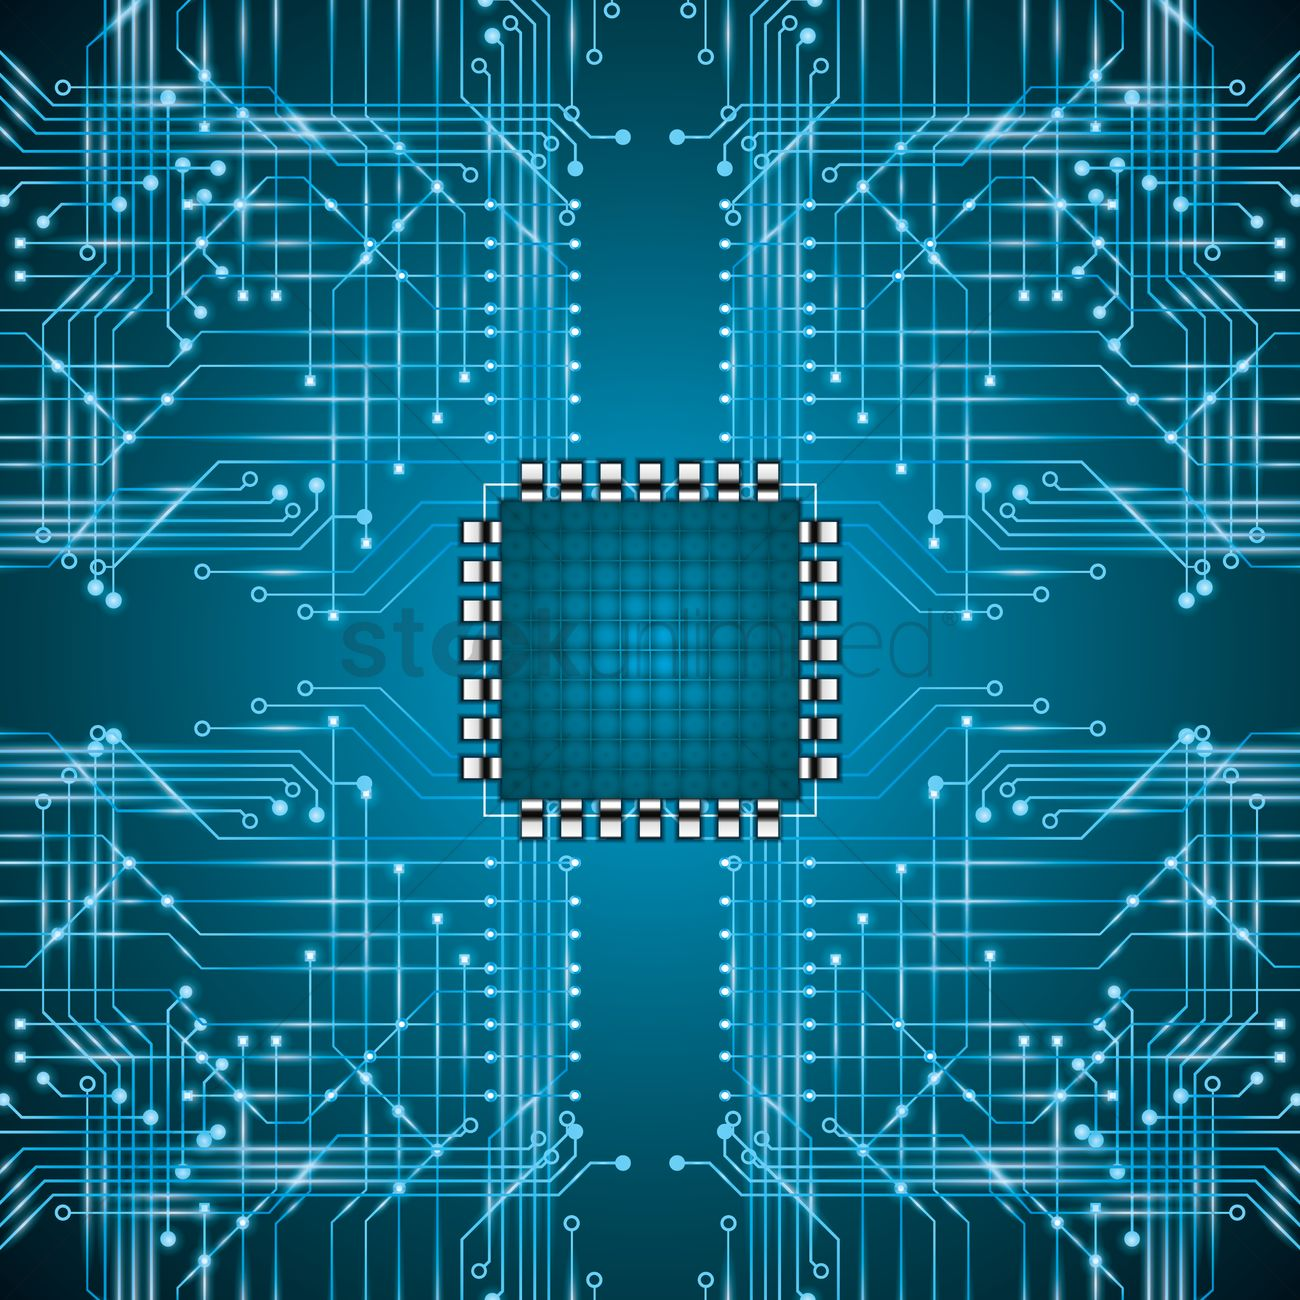 microchip on circuit board wallpaper vector image circuit board design clipart circuit board clipart png